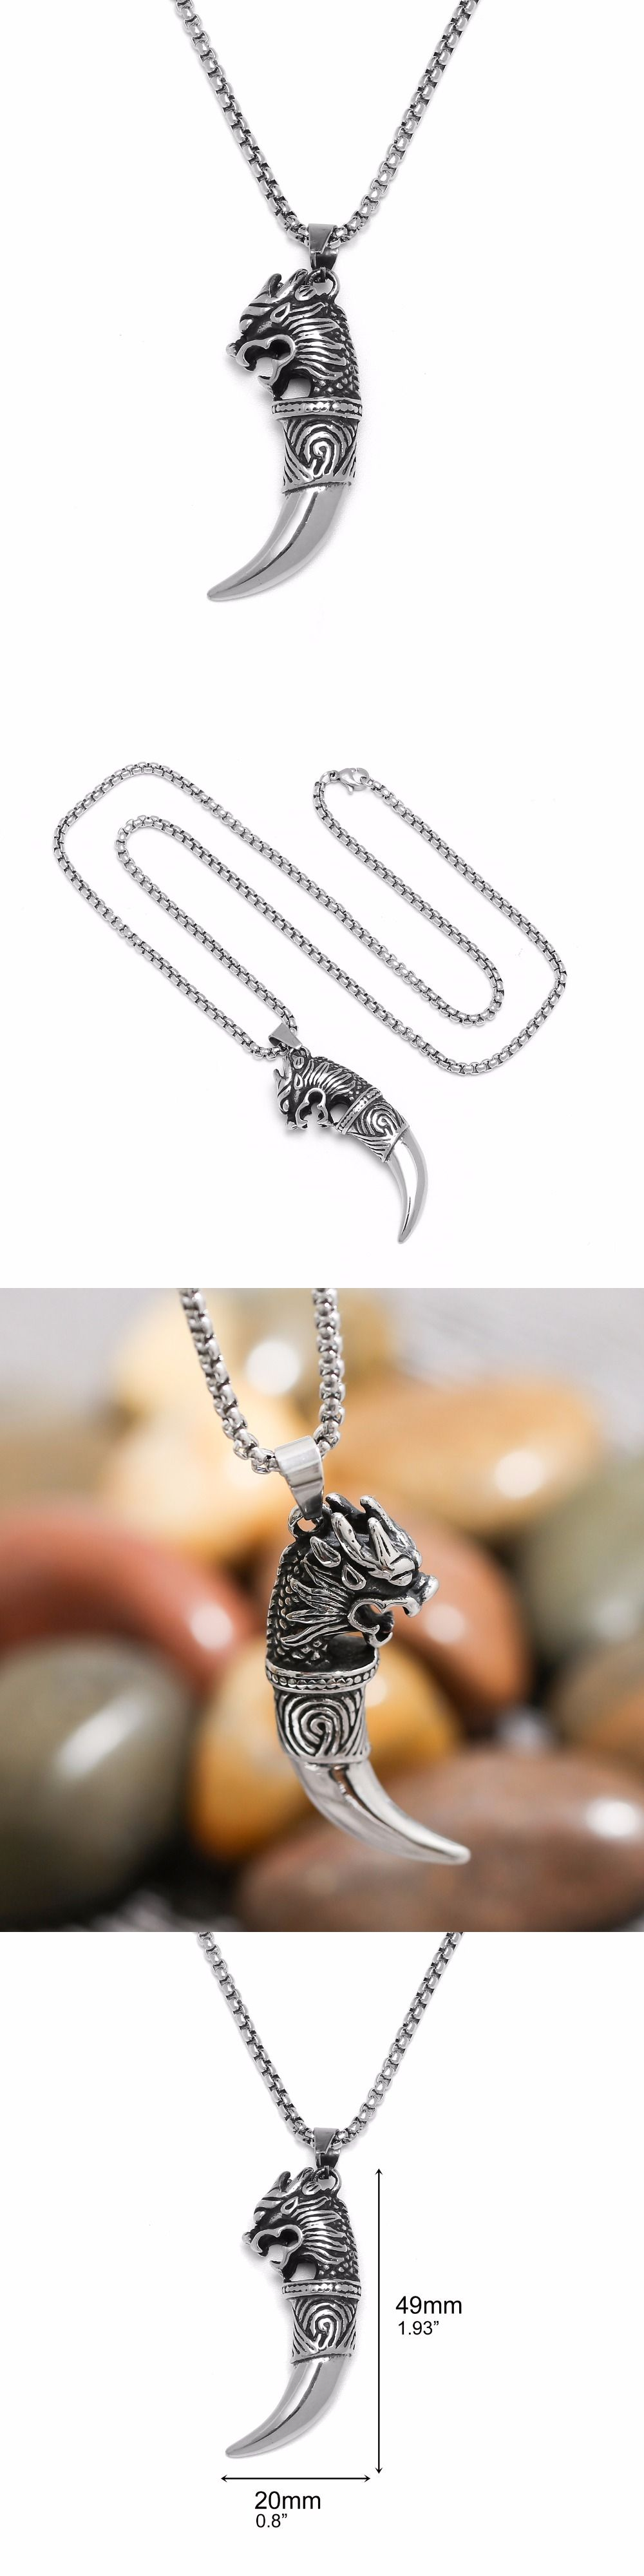 925 Sterling Silver Dragon Head Wolf Tooth Pendant Necklace 22 Inches Boyfriend Gift aog1Wk0Jl